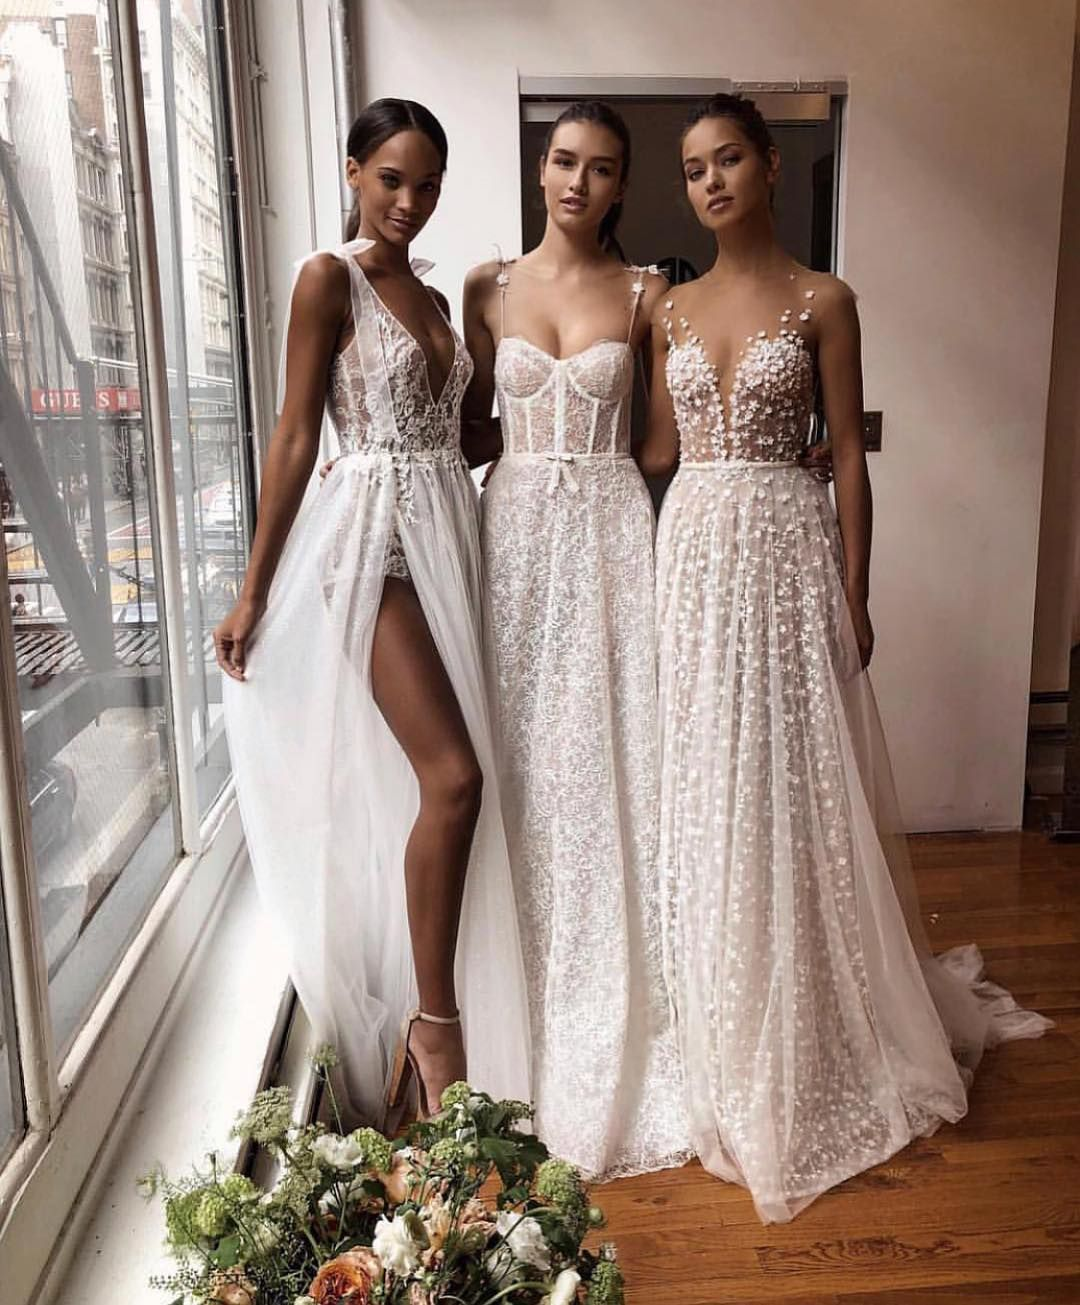 Streetstyle Inspirations On Instagram Berta Via Luxury Fashion Style Tag Thestreetograph Or Use Thes Wedding Dresses Wedding Outfit Bridesmaid Dresses